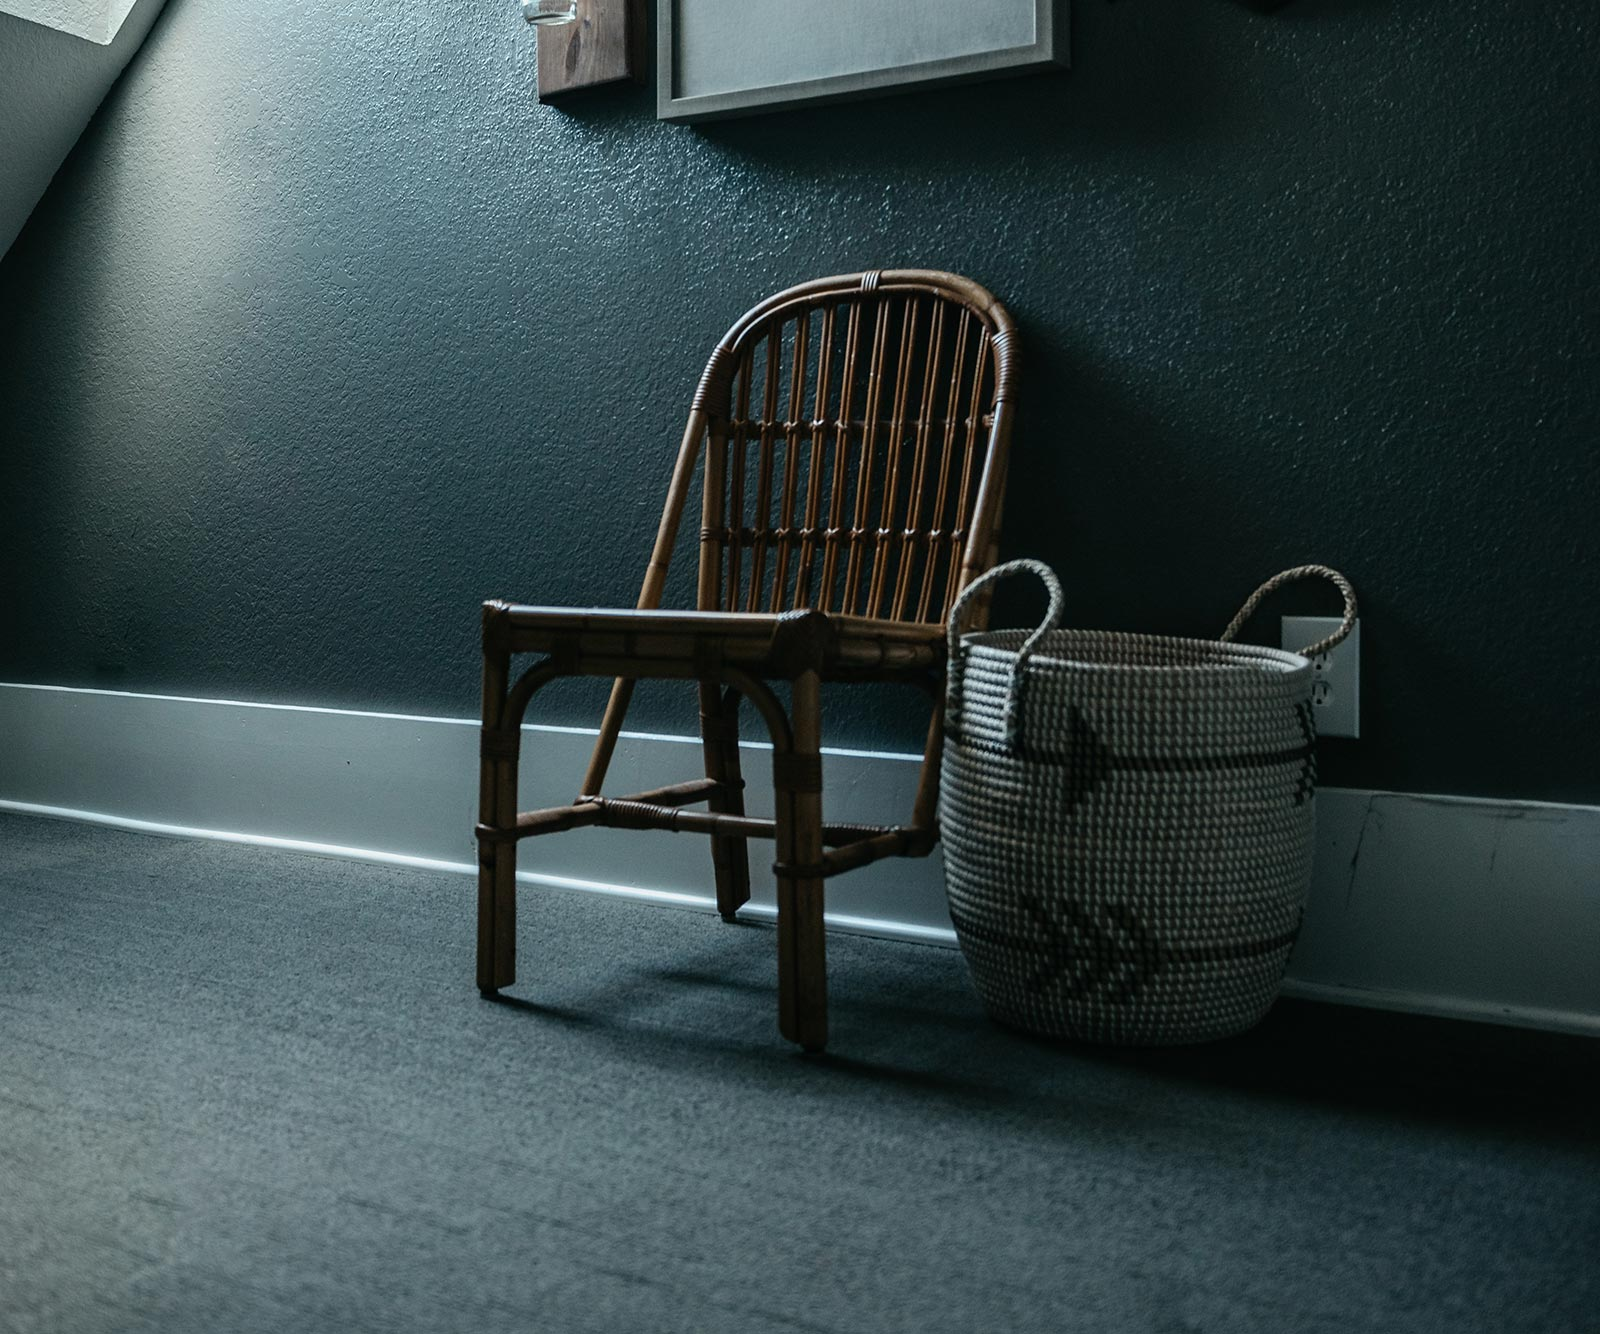 Shop Furniture Direct: How To Shop For Sustainable Furniture